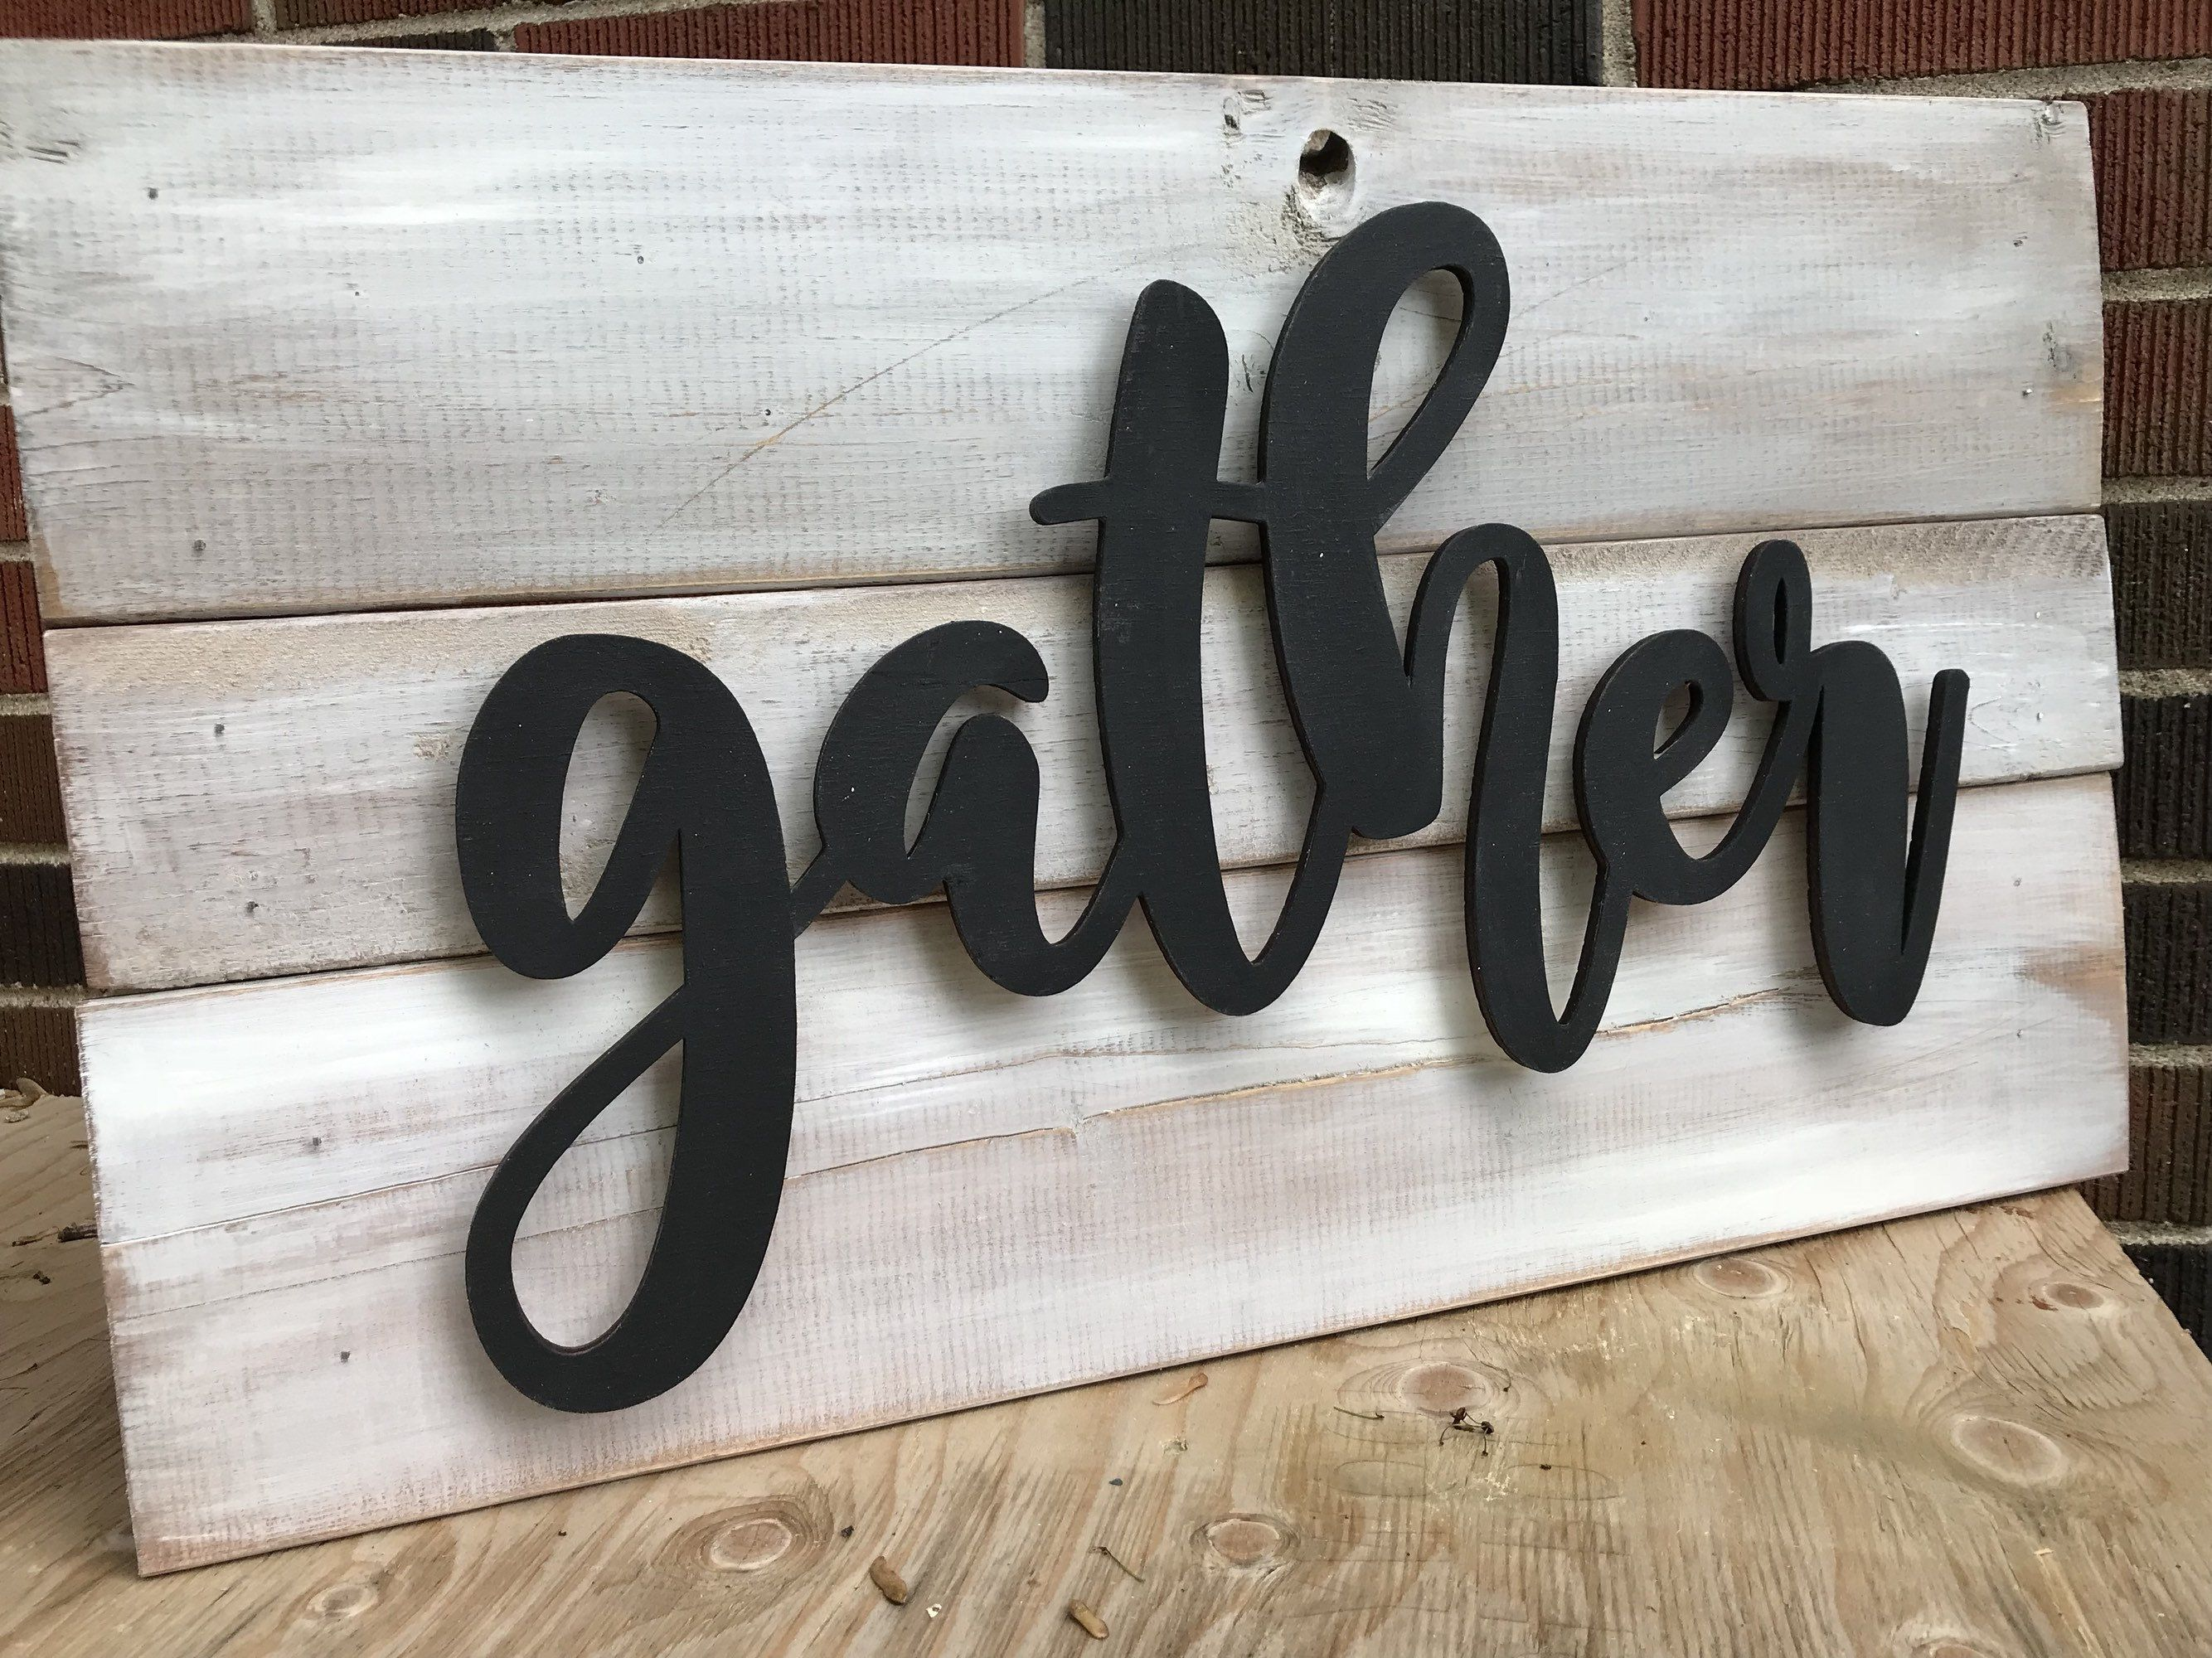 Gather Farmhouse Inspired Wood Sign With 3d Letters White Washed Distressed Ready To Ship Rustic Decor Wall Hanging Free Shipping Wooden Pallet Signs Wood Signs Rustic Decor